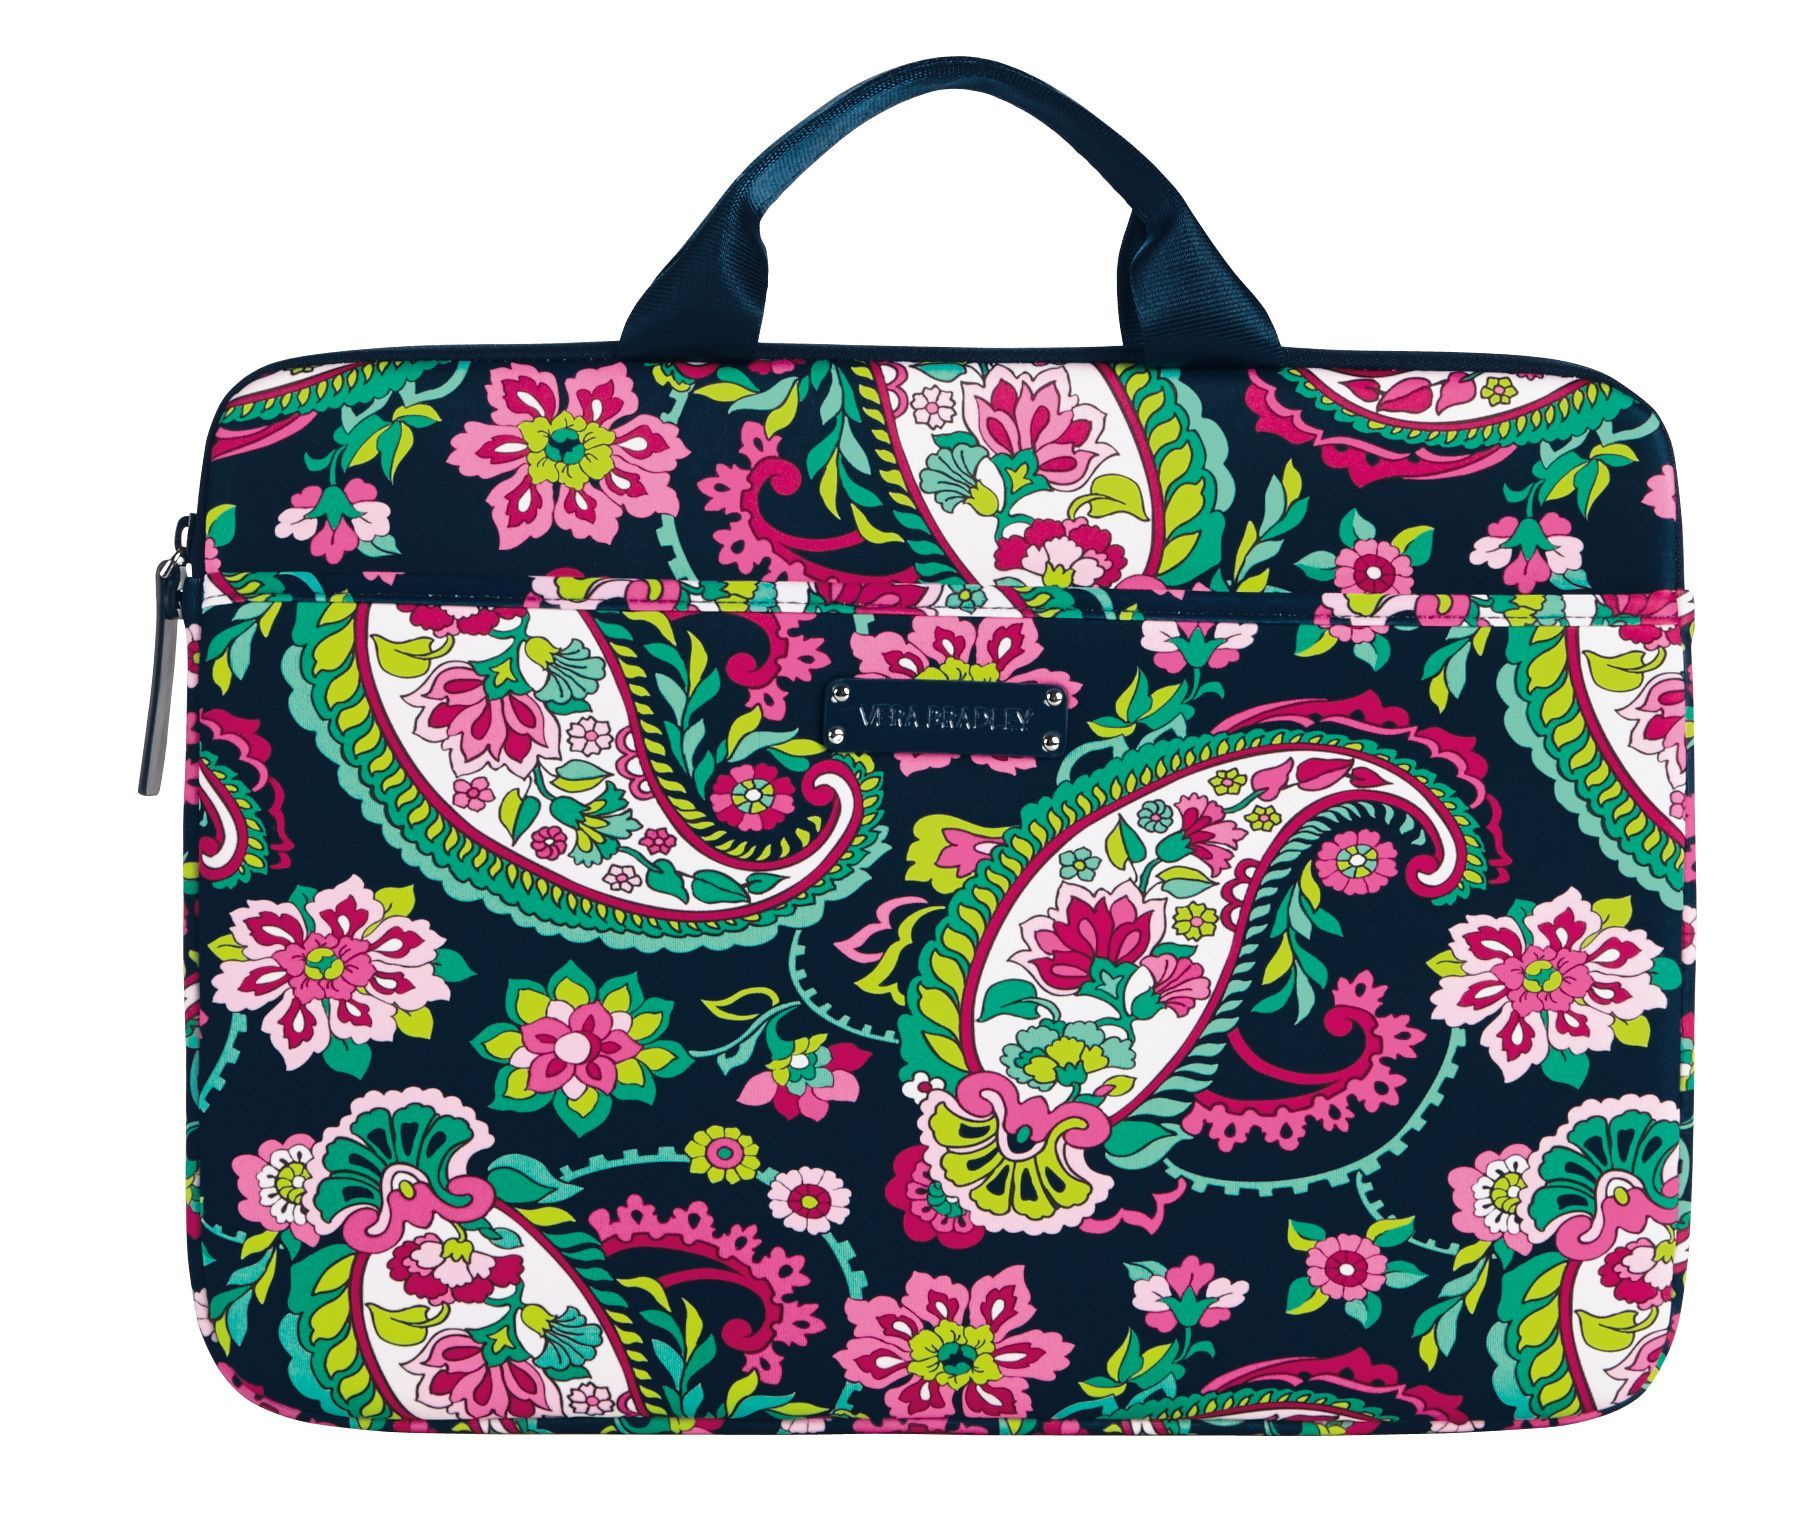 6ea404dc81 Vera Bradley Neoprene Laptop Case in Petal Paisley--This weekend only- Vera  Bradley is having an online outlet sale. Read more  at Posh on a Budget!